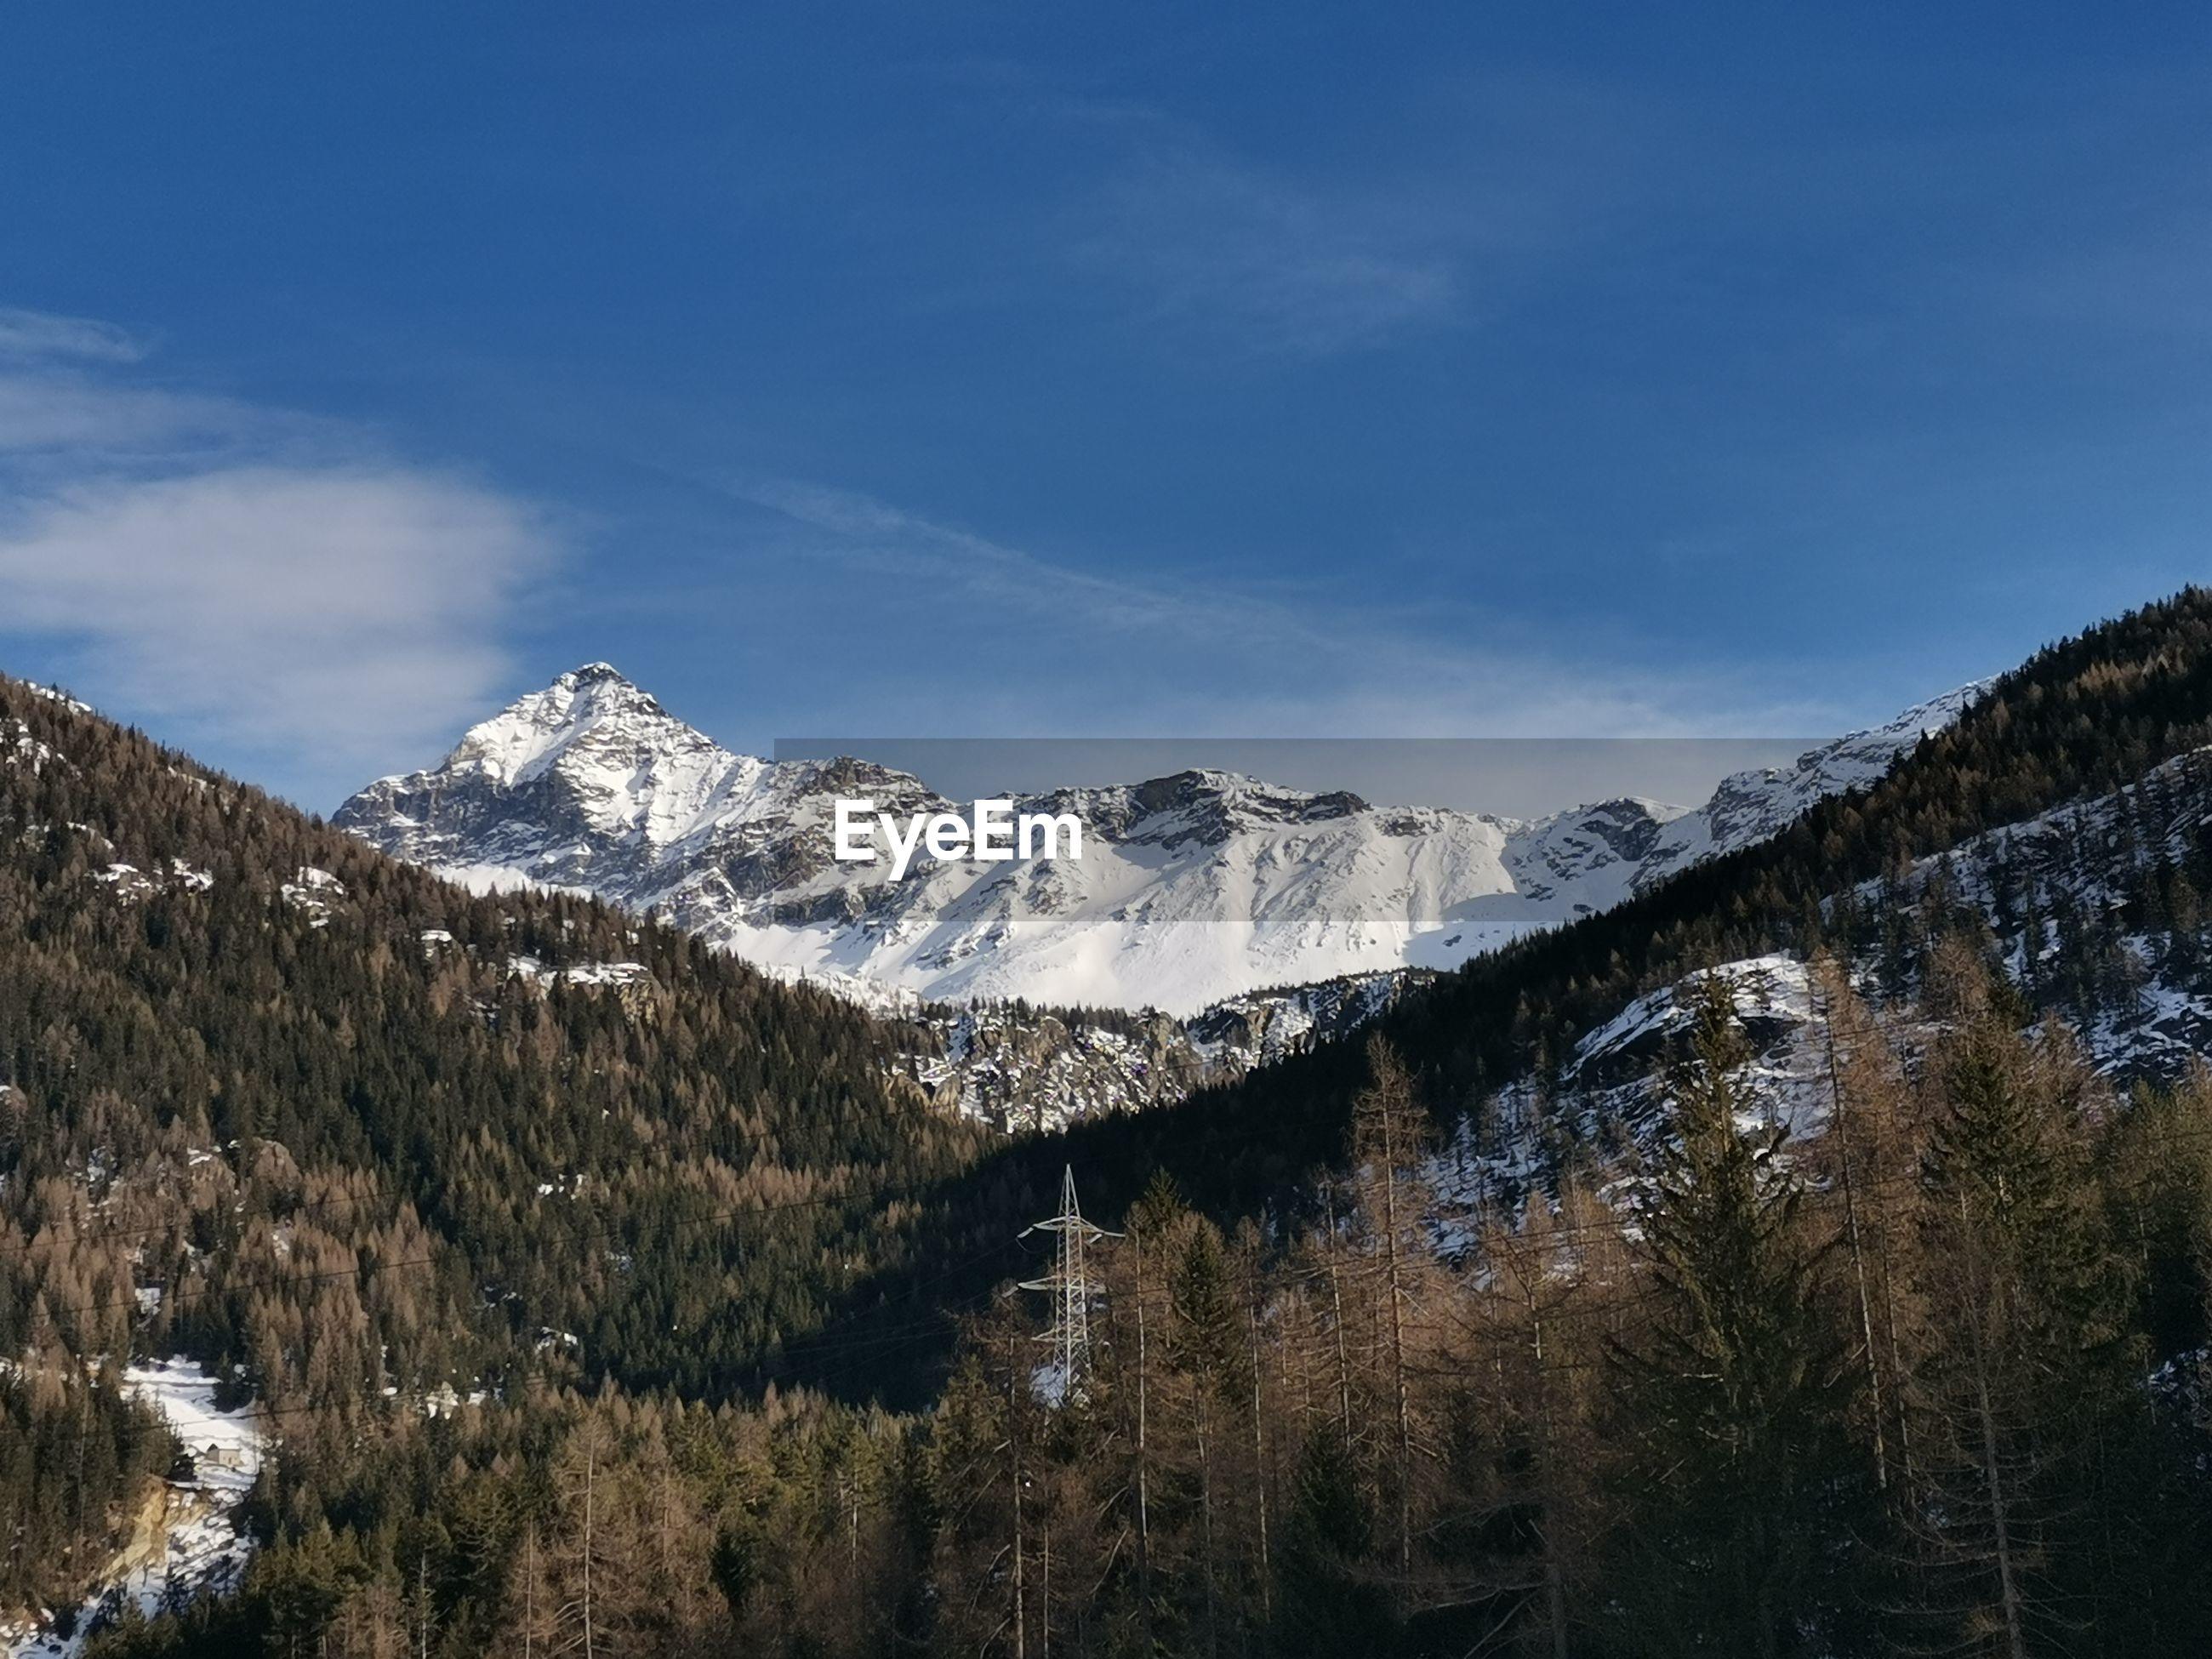 Scenic view of snowcapped mountains against sky